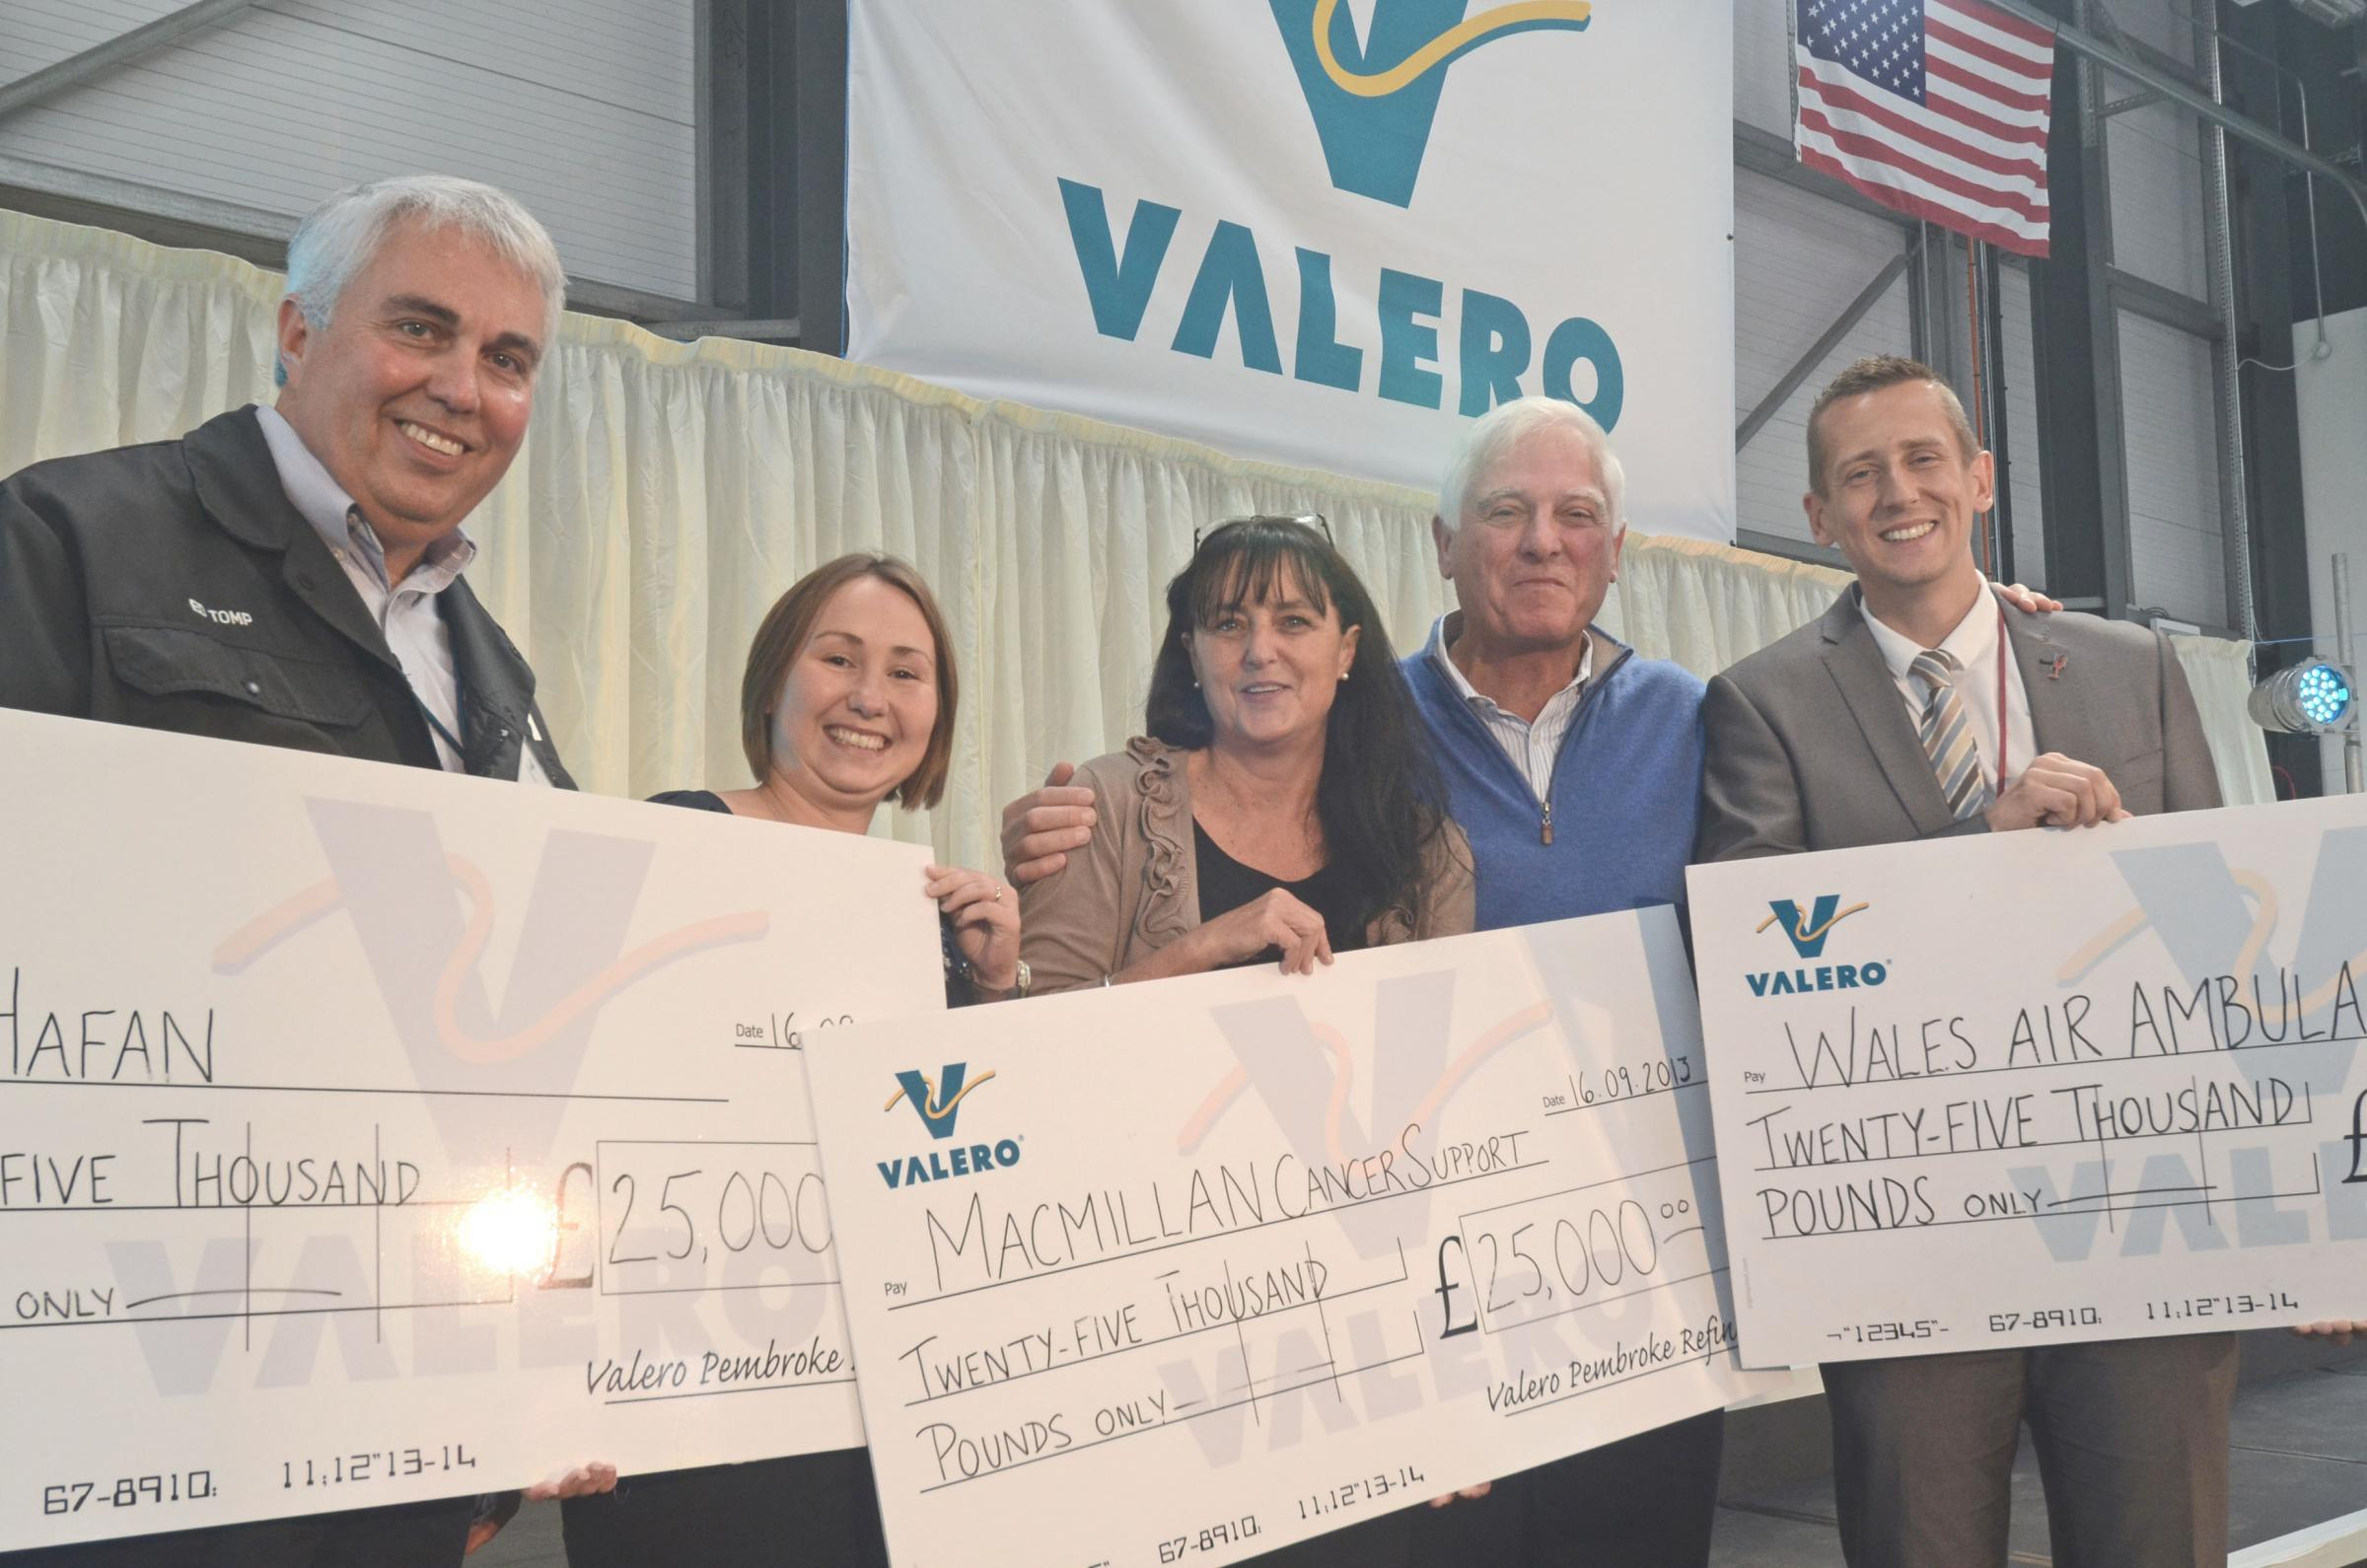 SURPRISE DONATION: Valero Pembroke Refinery general manager Ed Tomp, Ty Hafan's Priscilla Bowden, Macmillan Cancer Support's Sue Reece, Valero chairman and CEO Bill Klesse and Wales Air Ambulance's Mark Stevens.  PICTURE: M